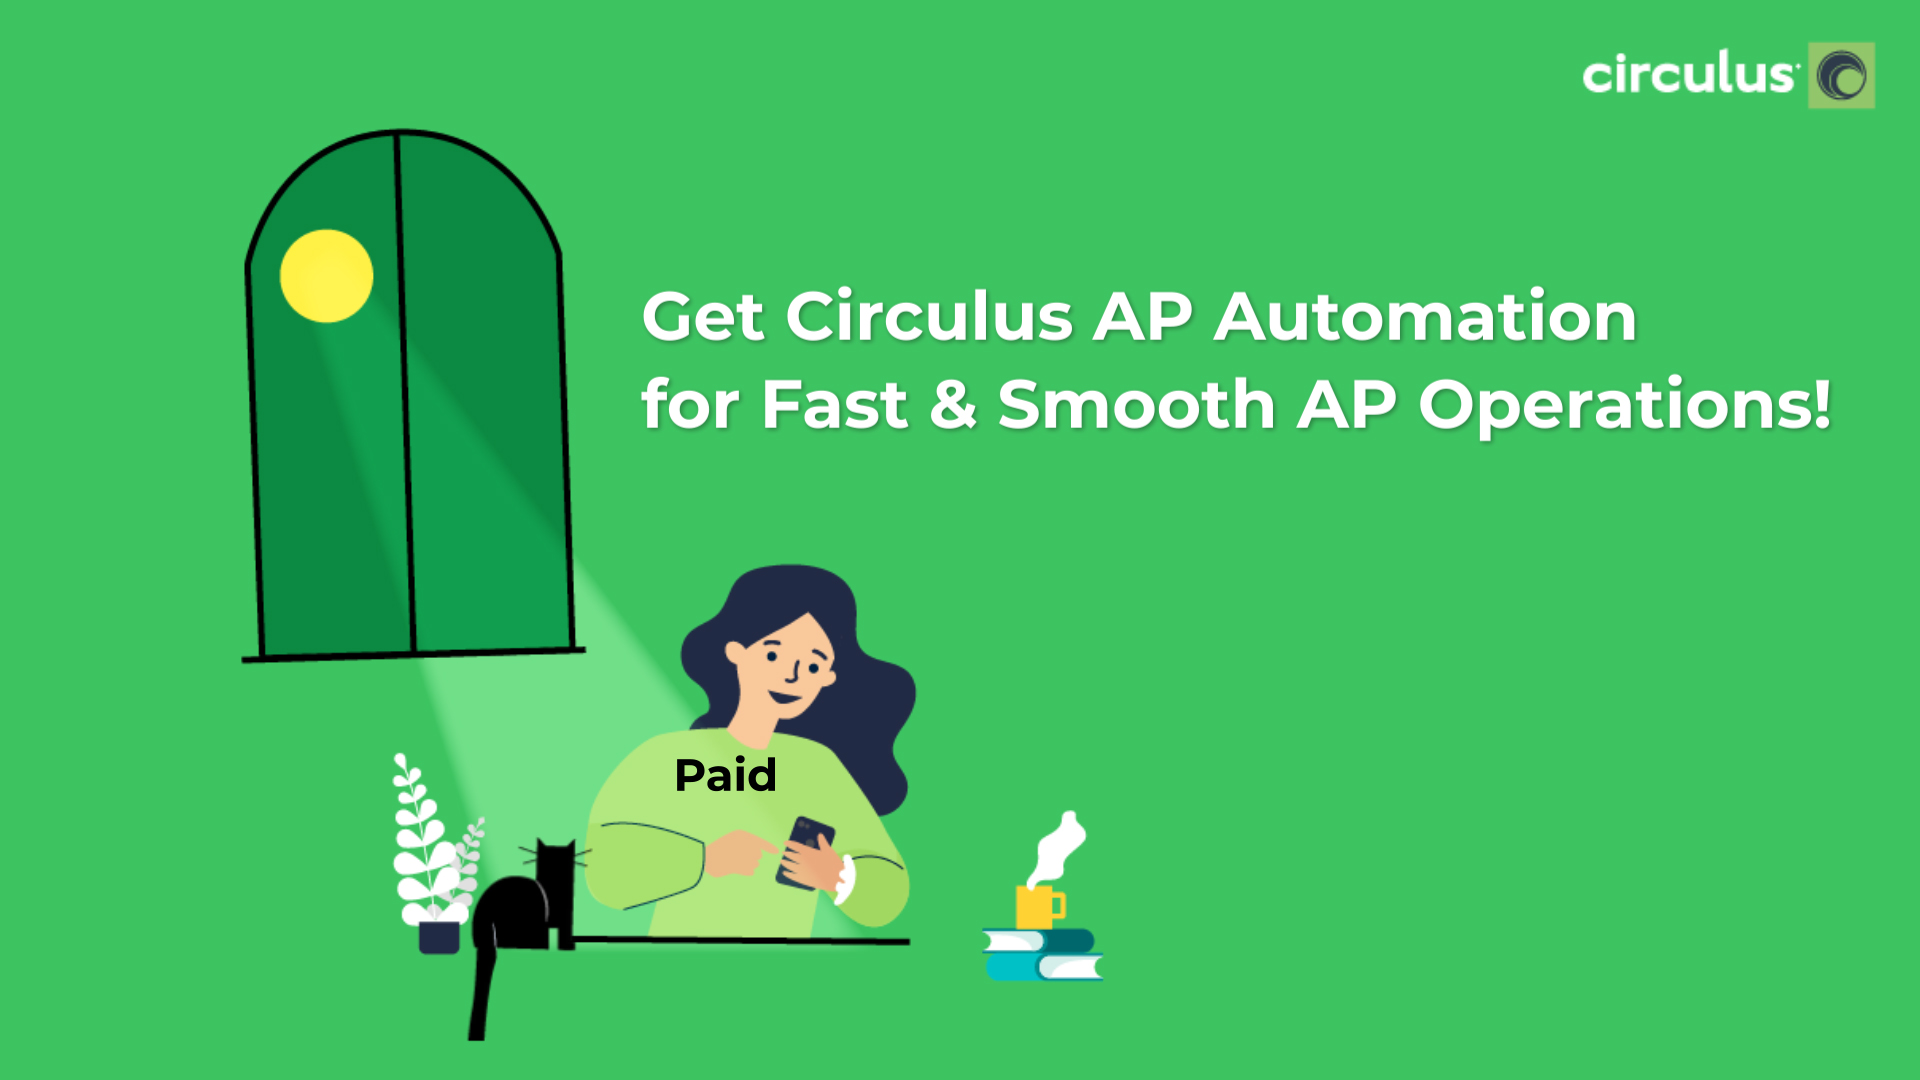 Switch to Smart AP Processing with Circulus